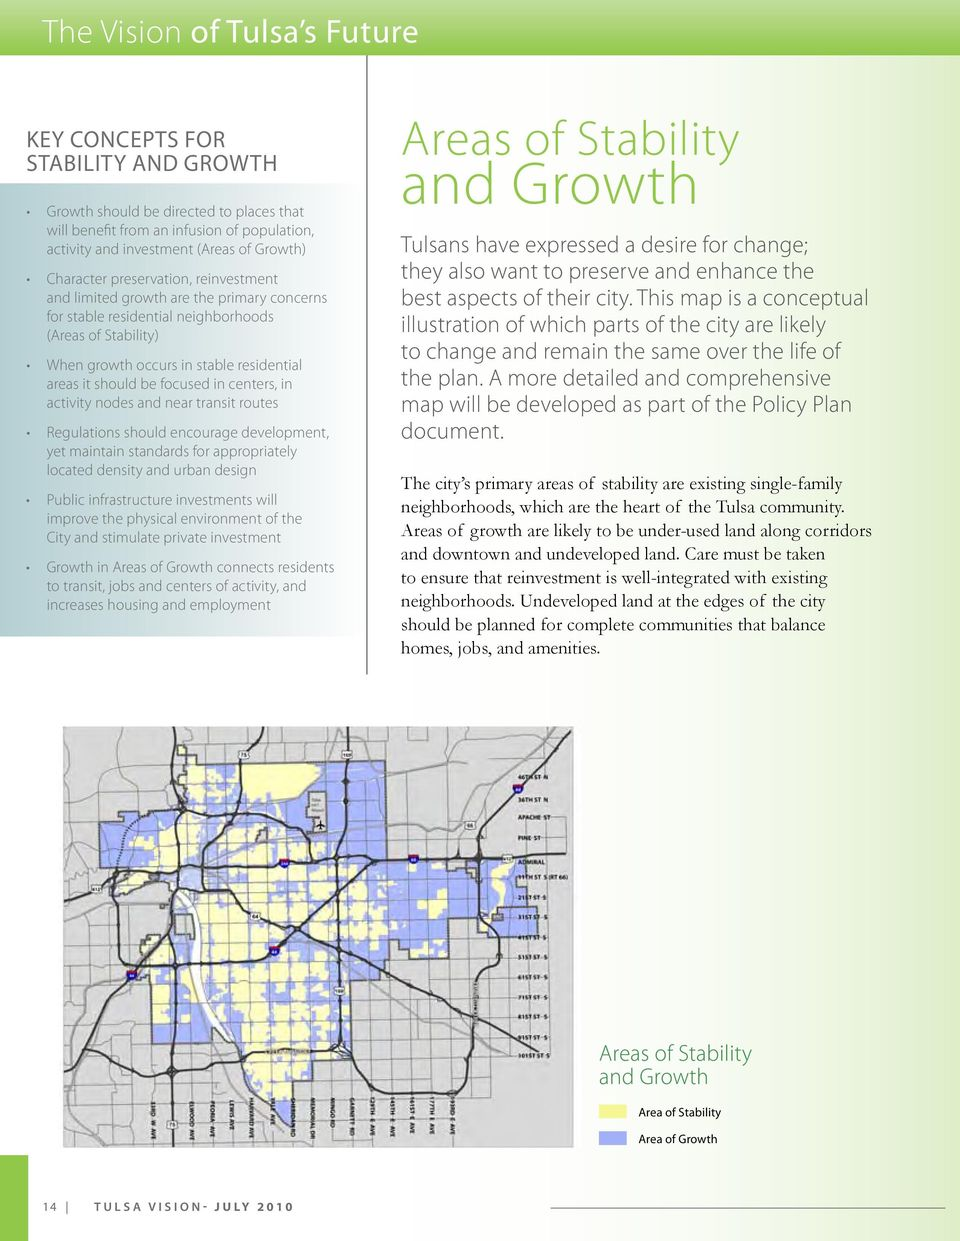 focused in centers, in activity nodes and near transit routes Regulations should encourage development, yet maintain standards for appropriately located density and urban design Public infrastructure